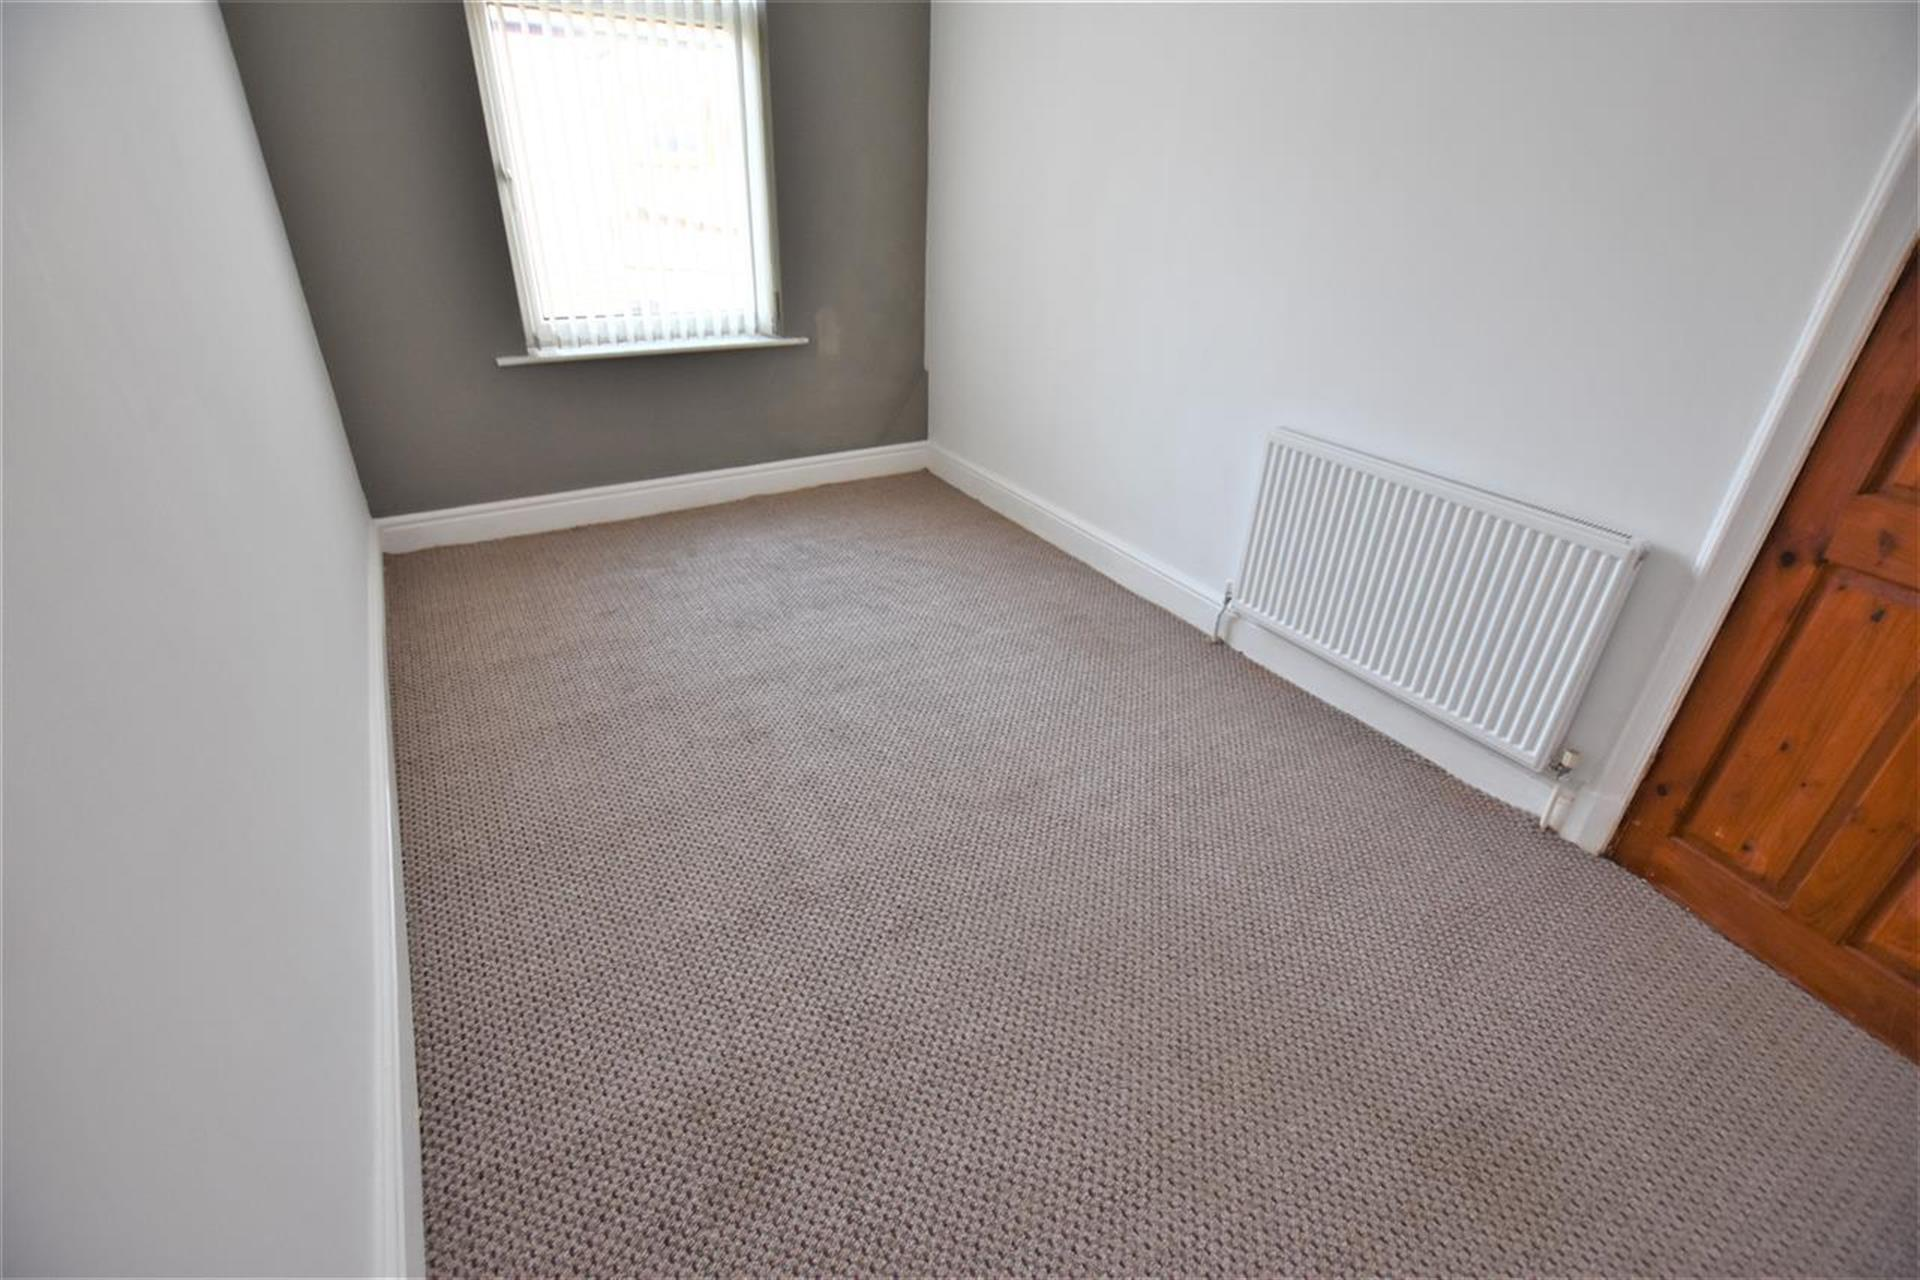 2 Bedroom End Terraced House For Sale - Second Bedroom